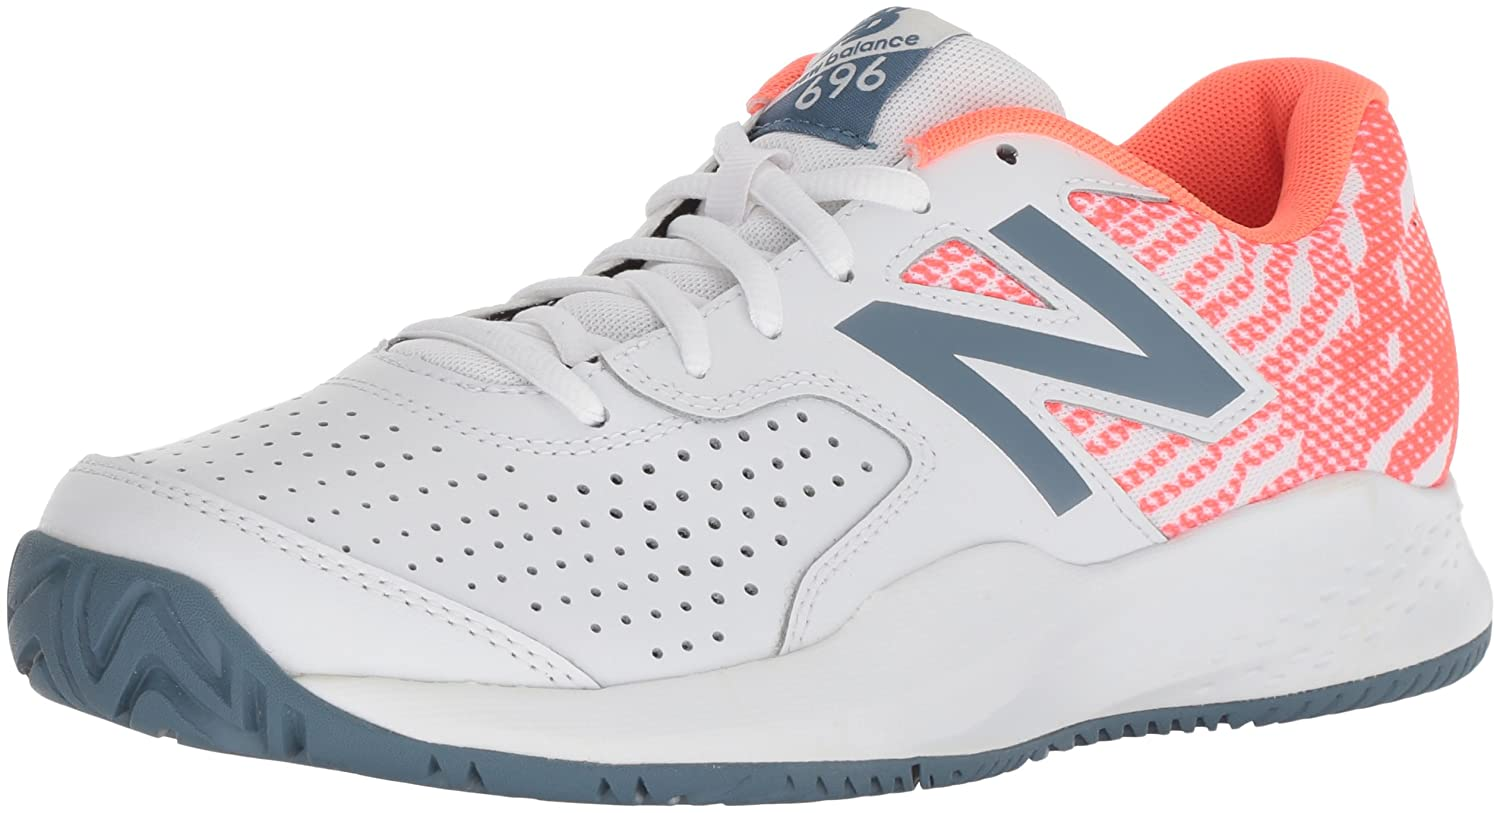 ccd29c0334eb New Balance Women s 696v3 Hard Hard Hard Court Tennis Shoe B075R7N3PS 10 D  US